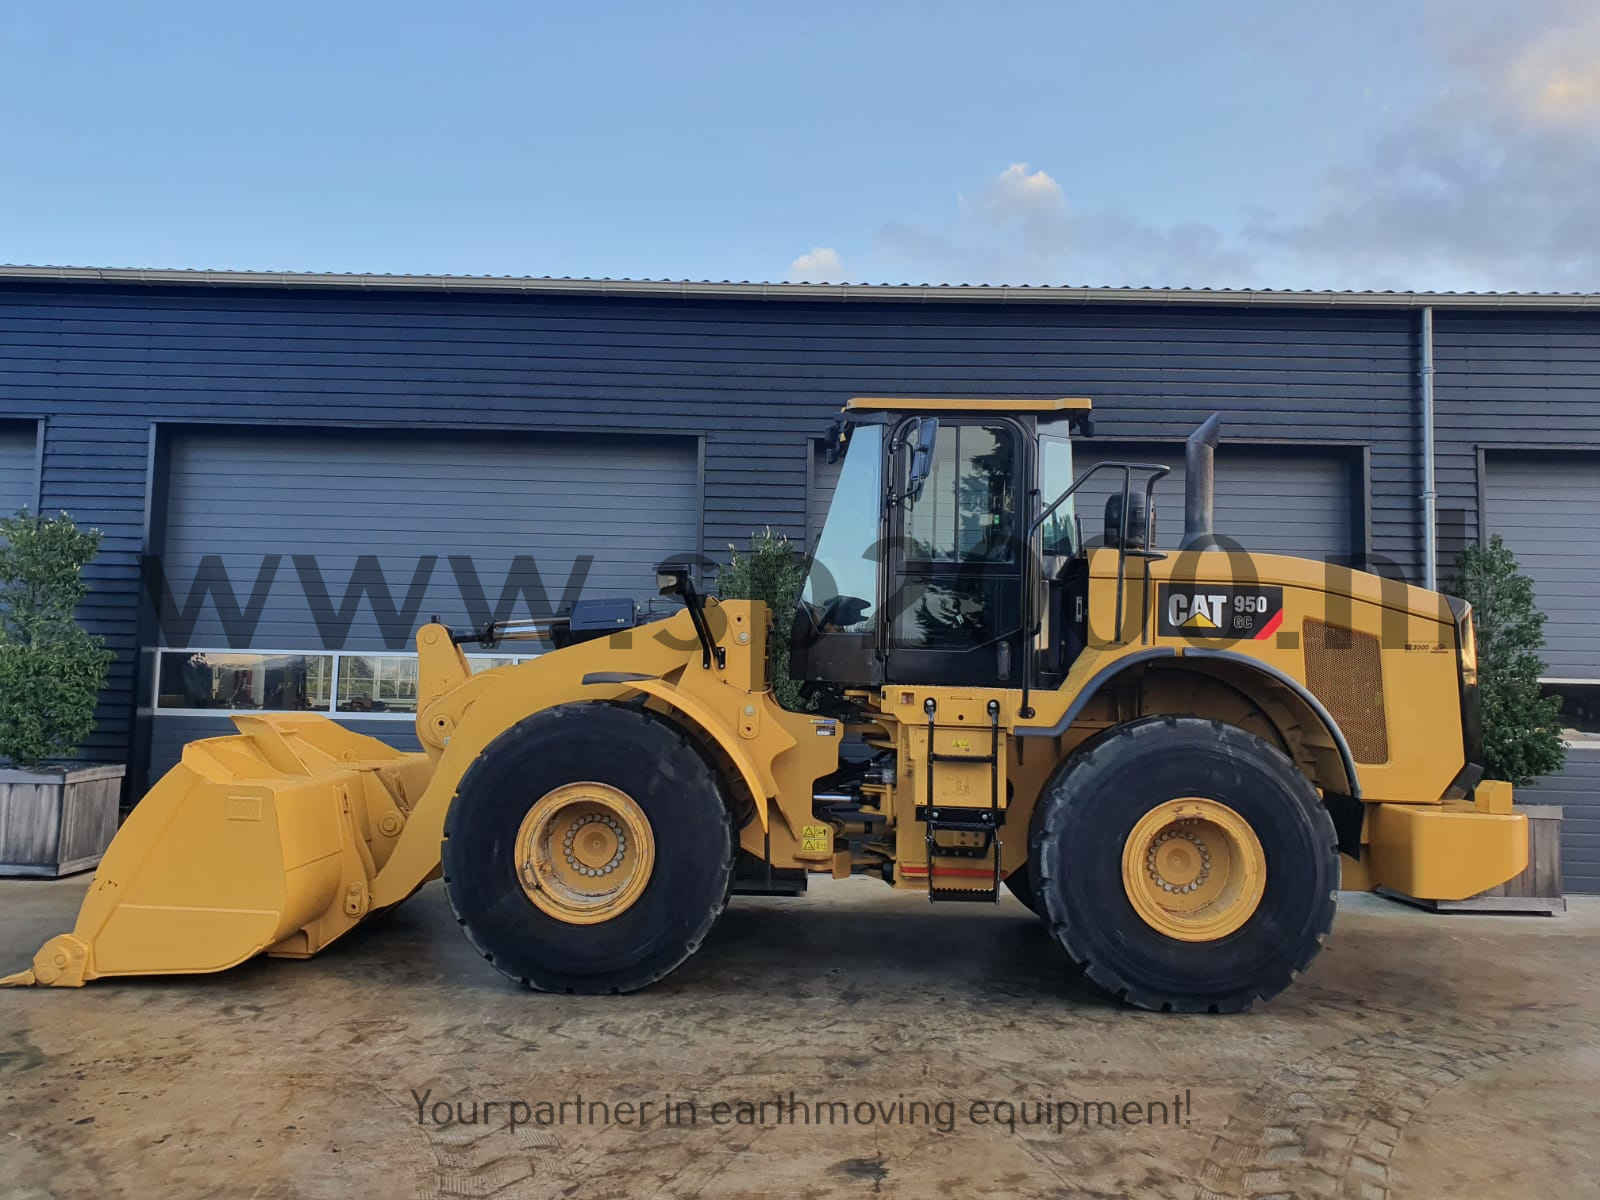 Caterpillar 950 GC Wheelloader